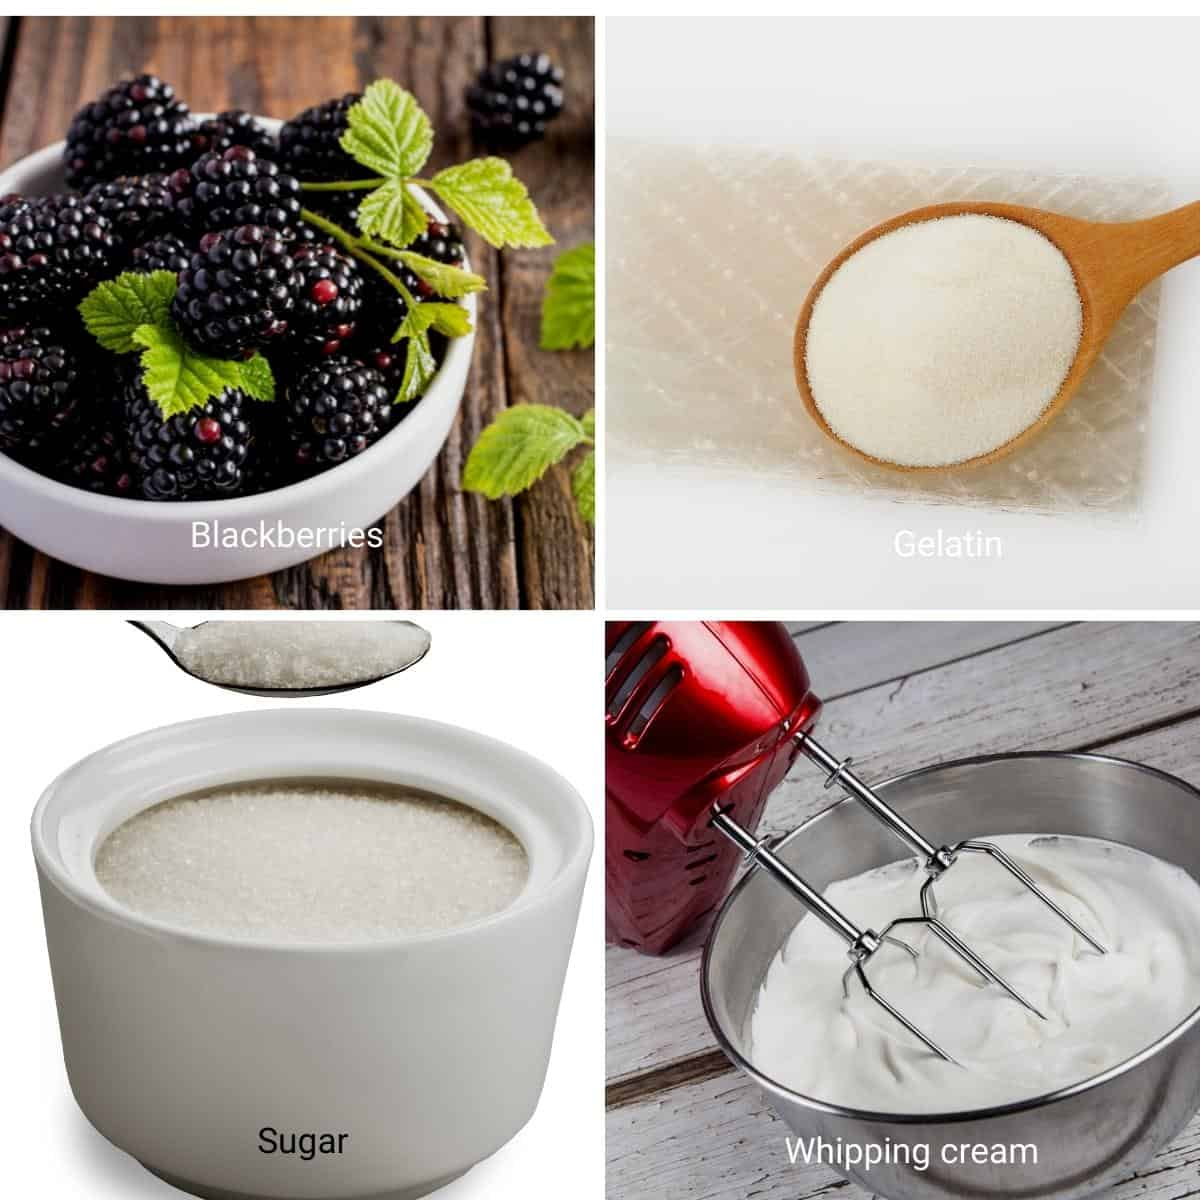 Ingredients for blackberry mousse.